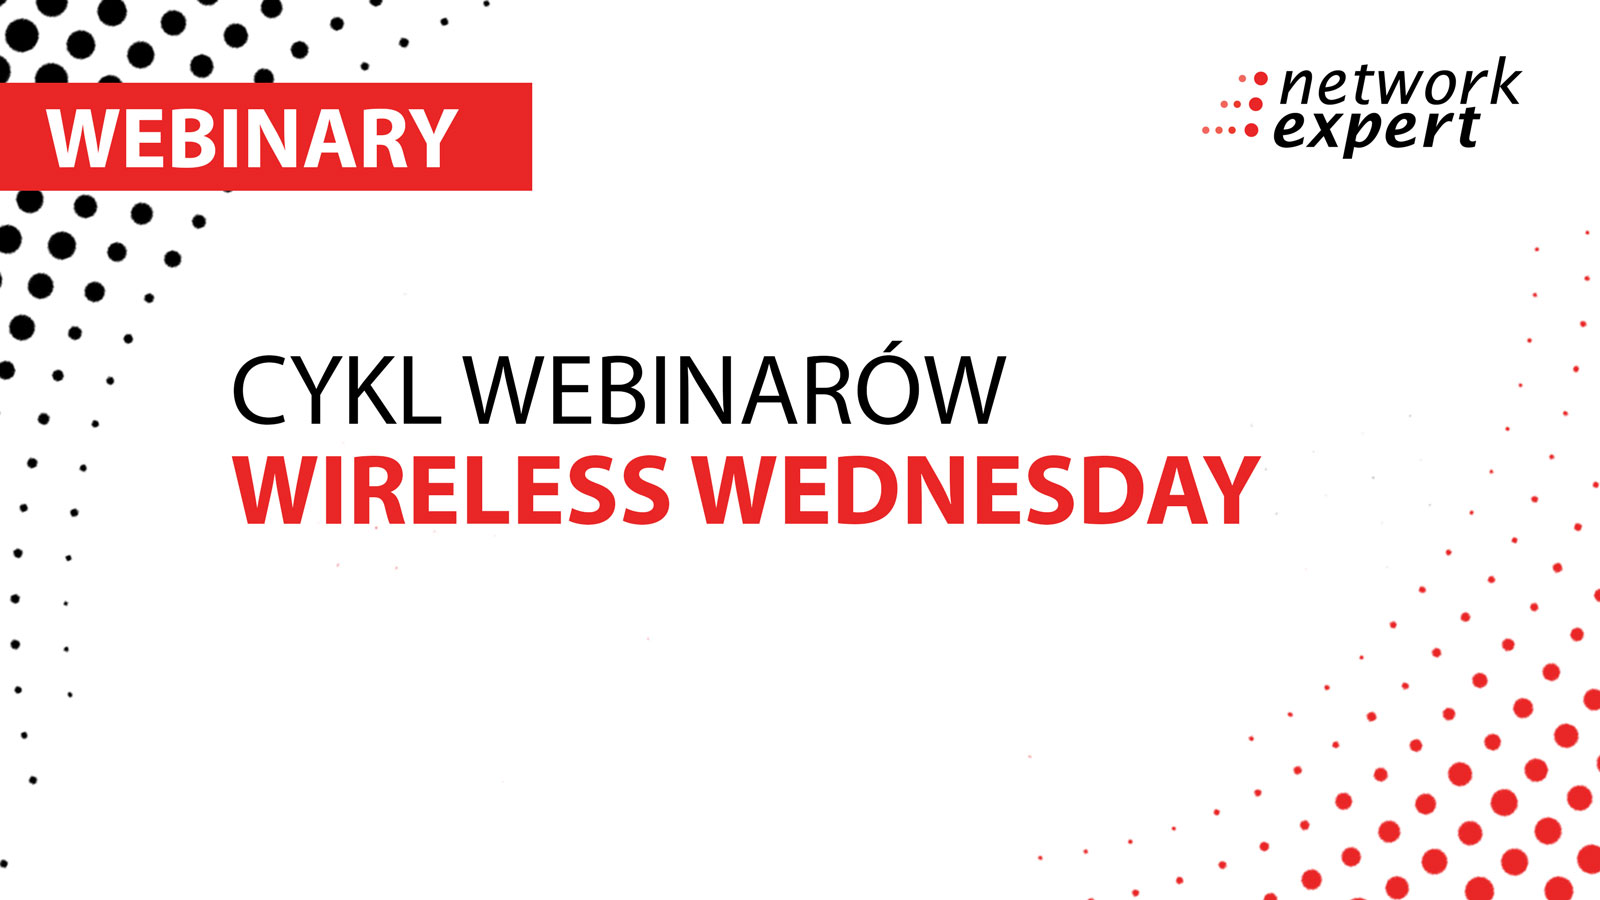 Cykl webinarów Wireless Wednesday